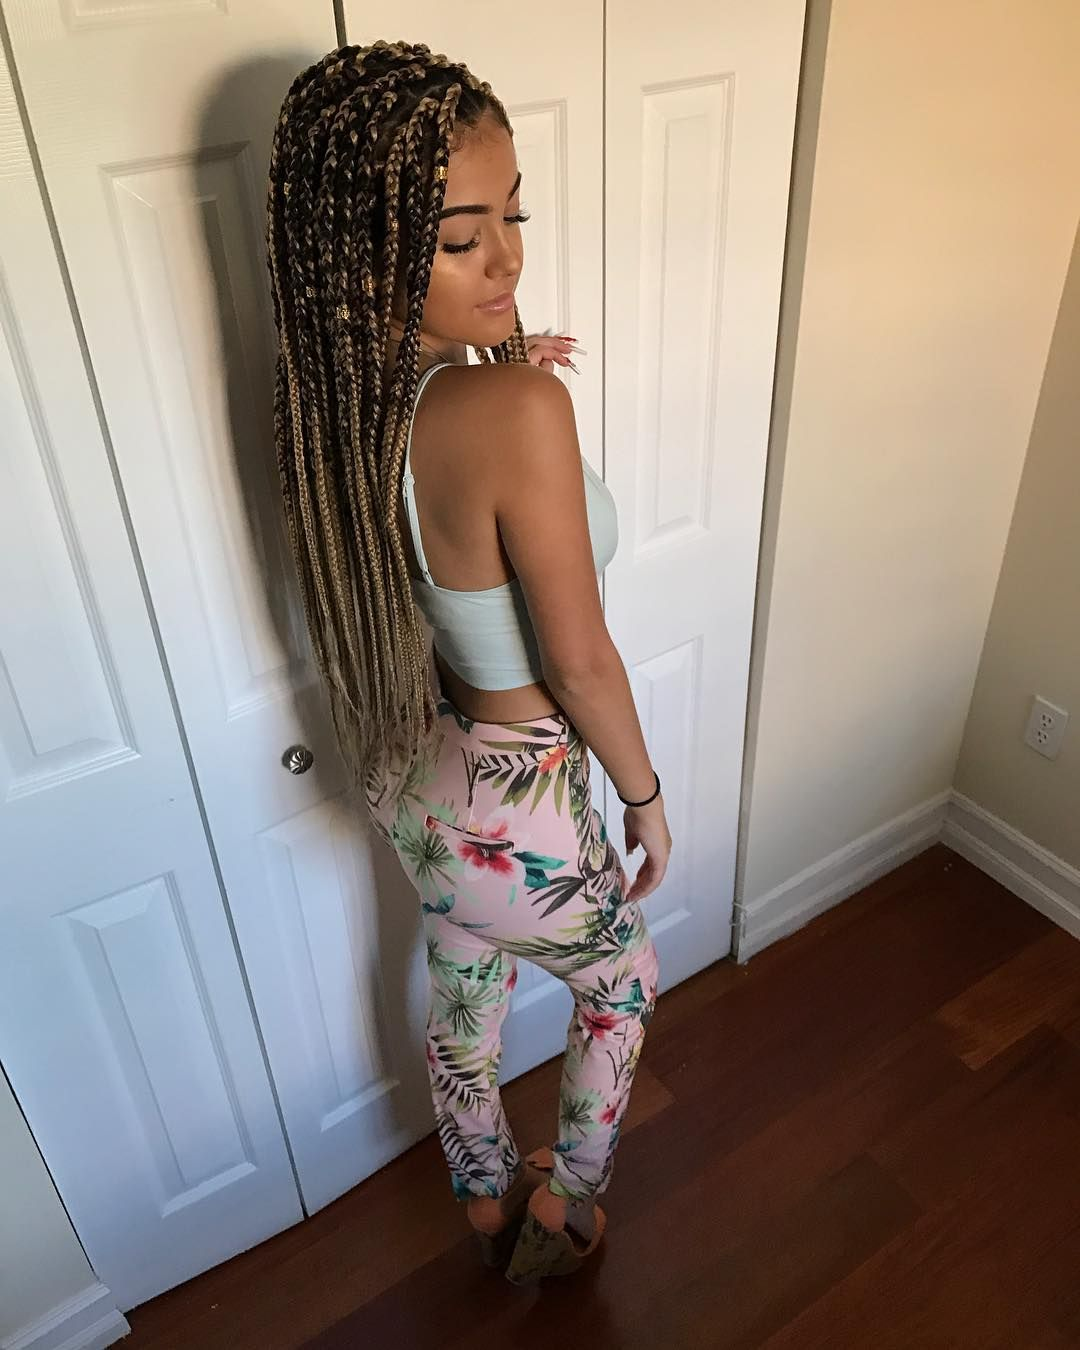 702404d7e7337 LIL Cuban 🌺. Find this Pin and more on malu trevejo ...